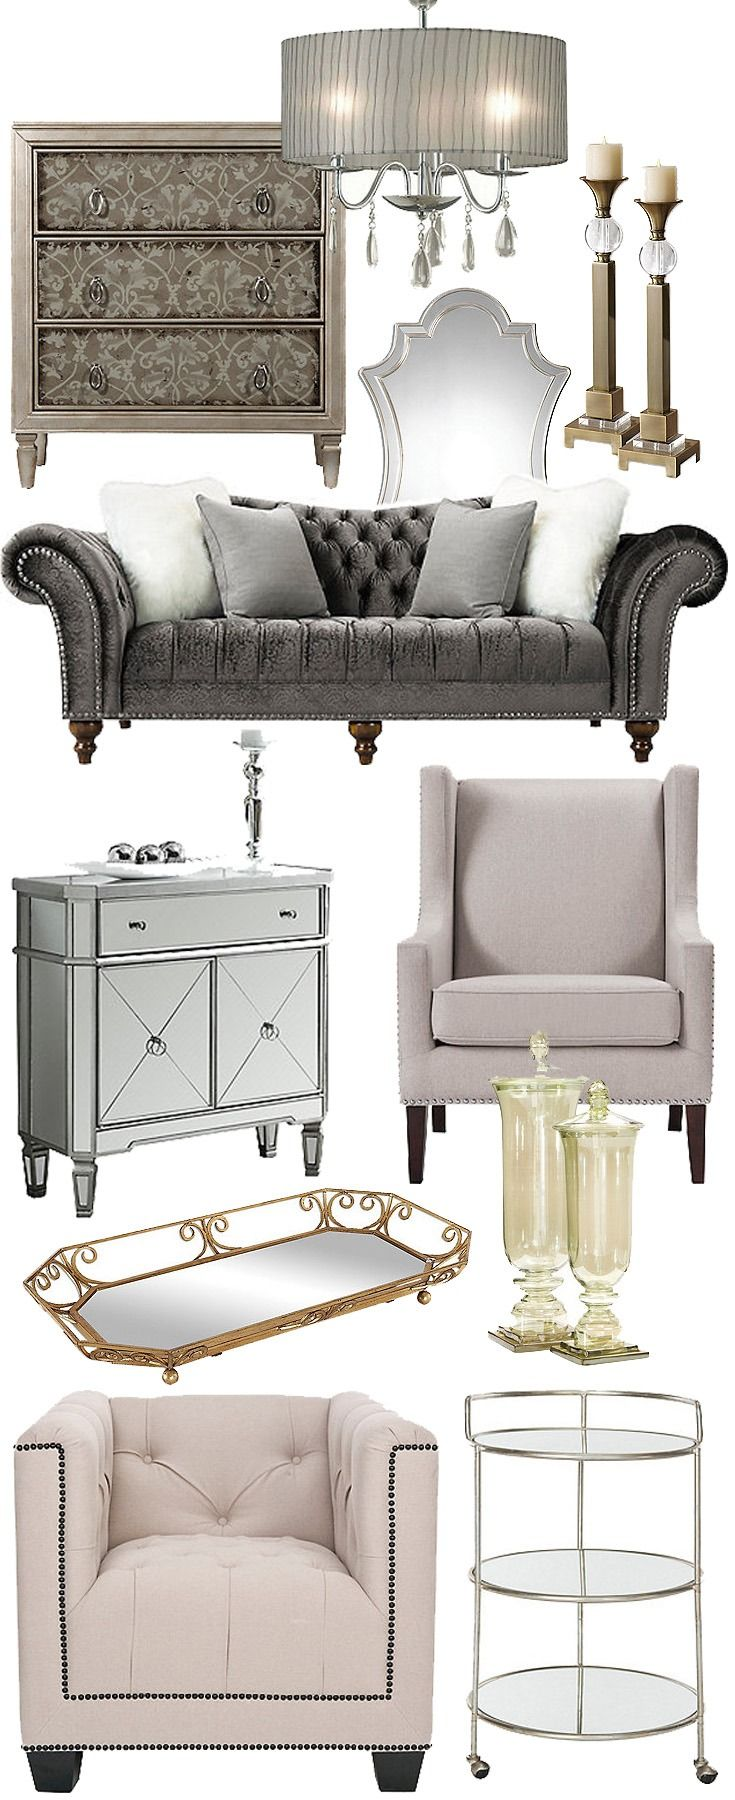 Sumptuously Showy Yet Still Refined, Vintage Glam Combines The Glamour Of  Hollywood And The Elegance